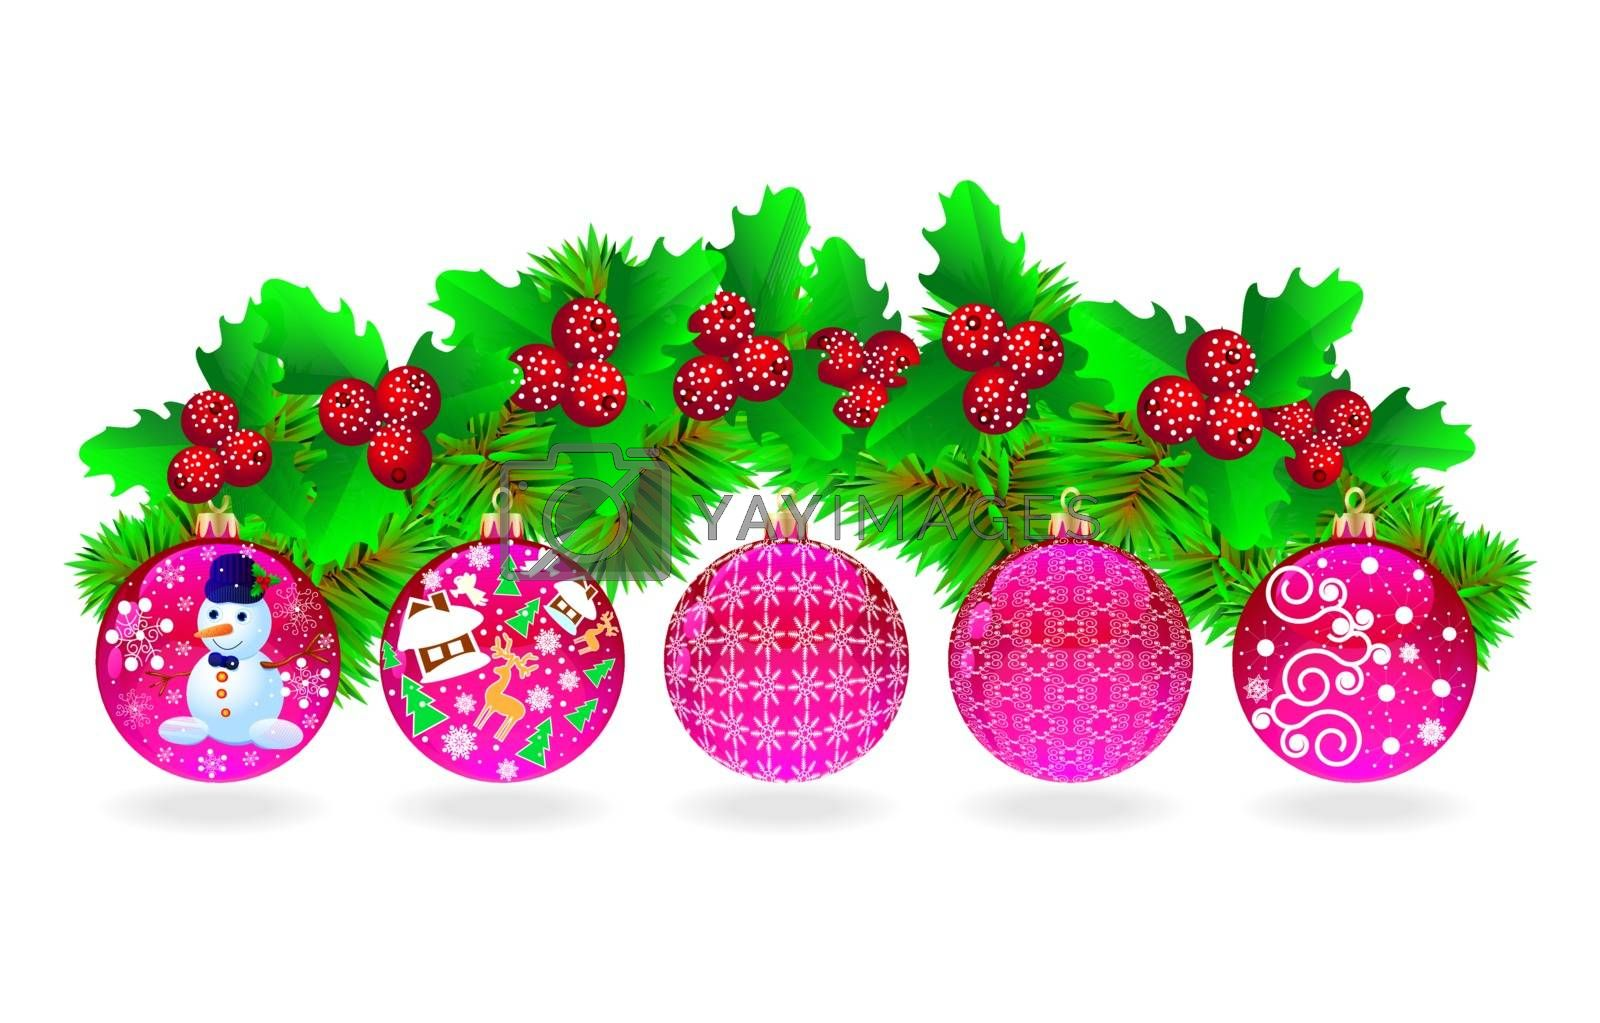 Festive set of Christmas balls, Christmas tree branches and berries.